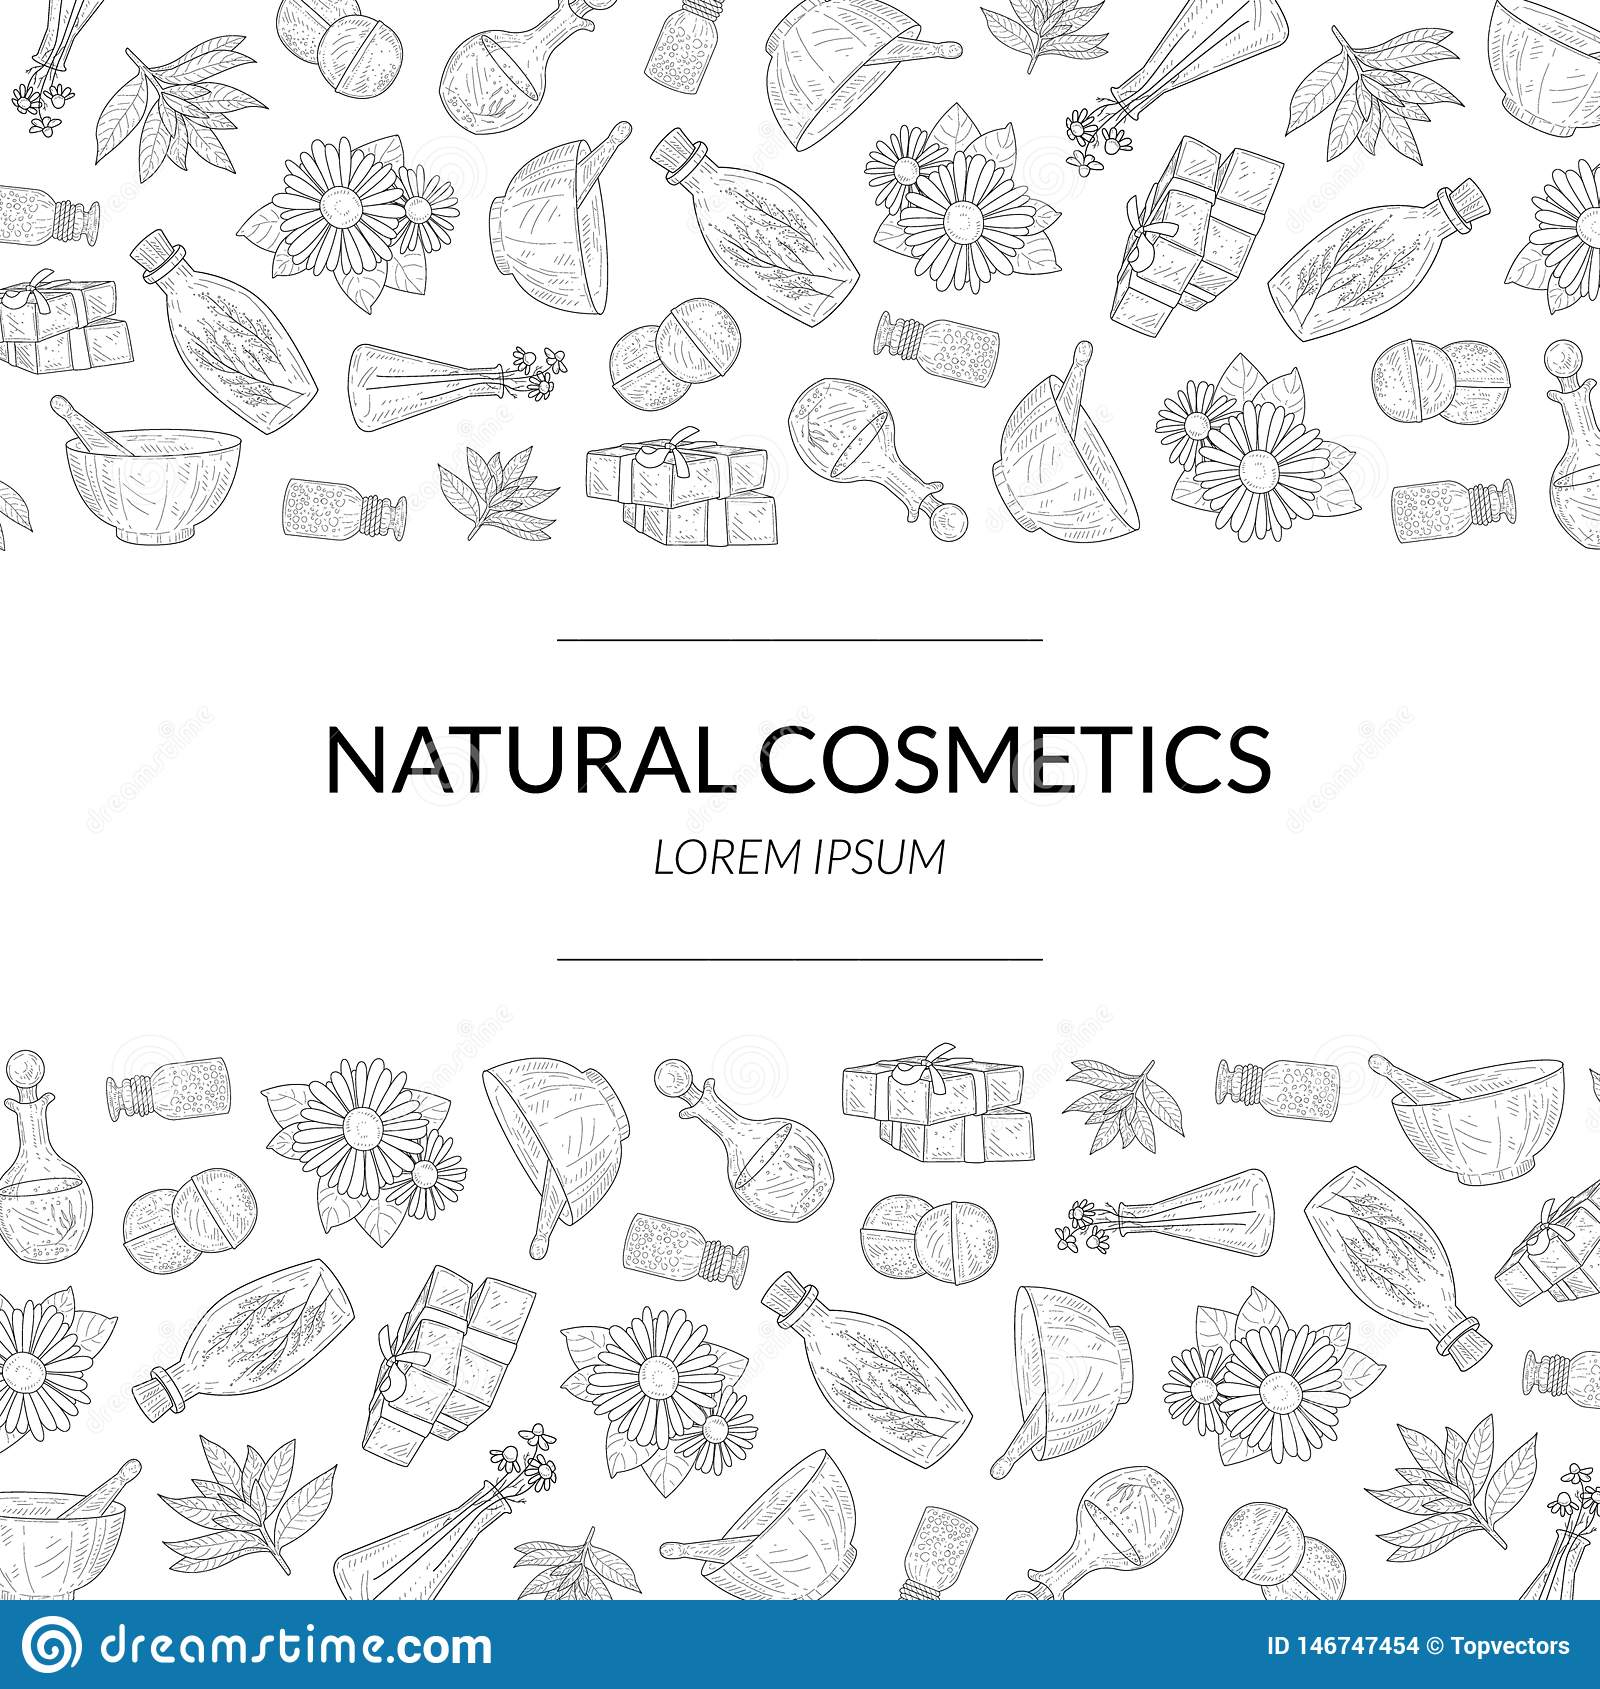 Natural Cosmetics Banner Template, Eco Organic Beauty Care Products Hand Drawn Pattern, Design Element Can Be Used for